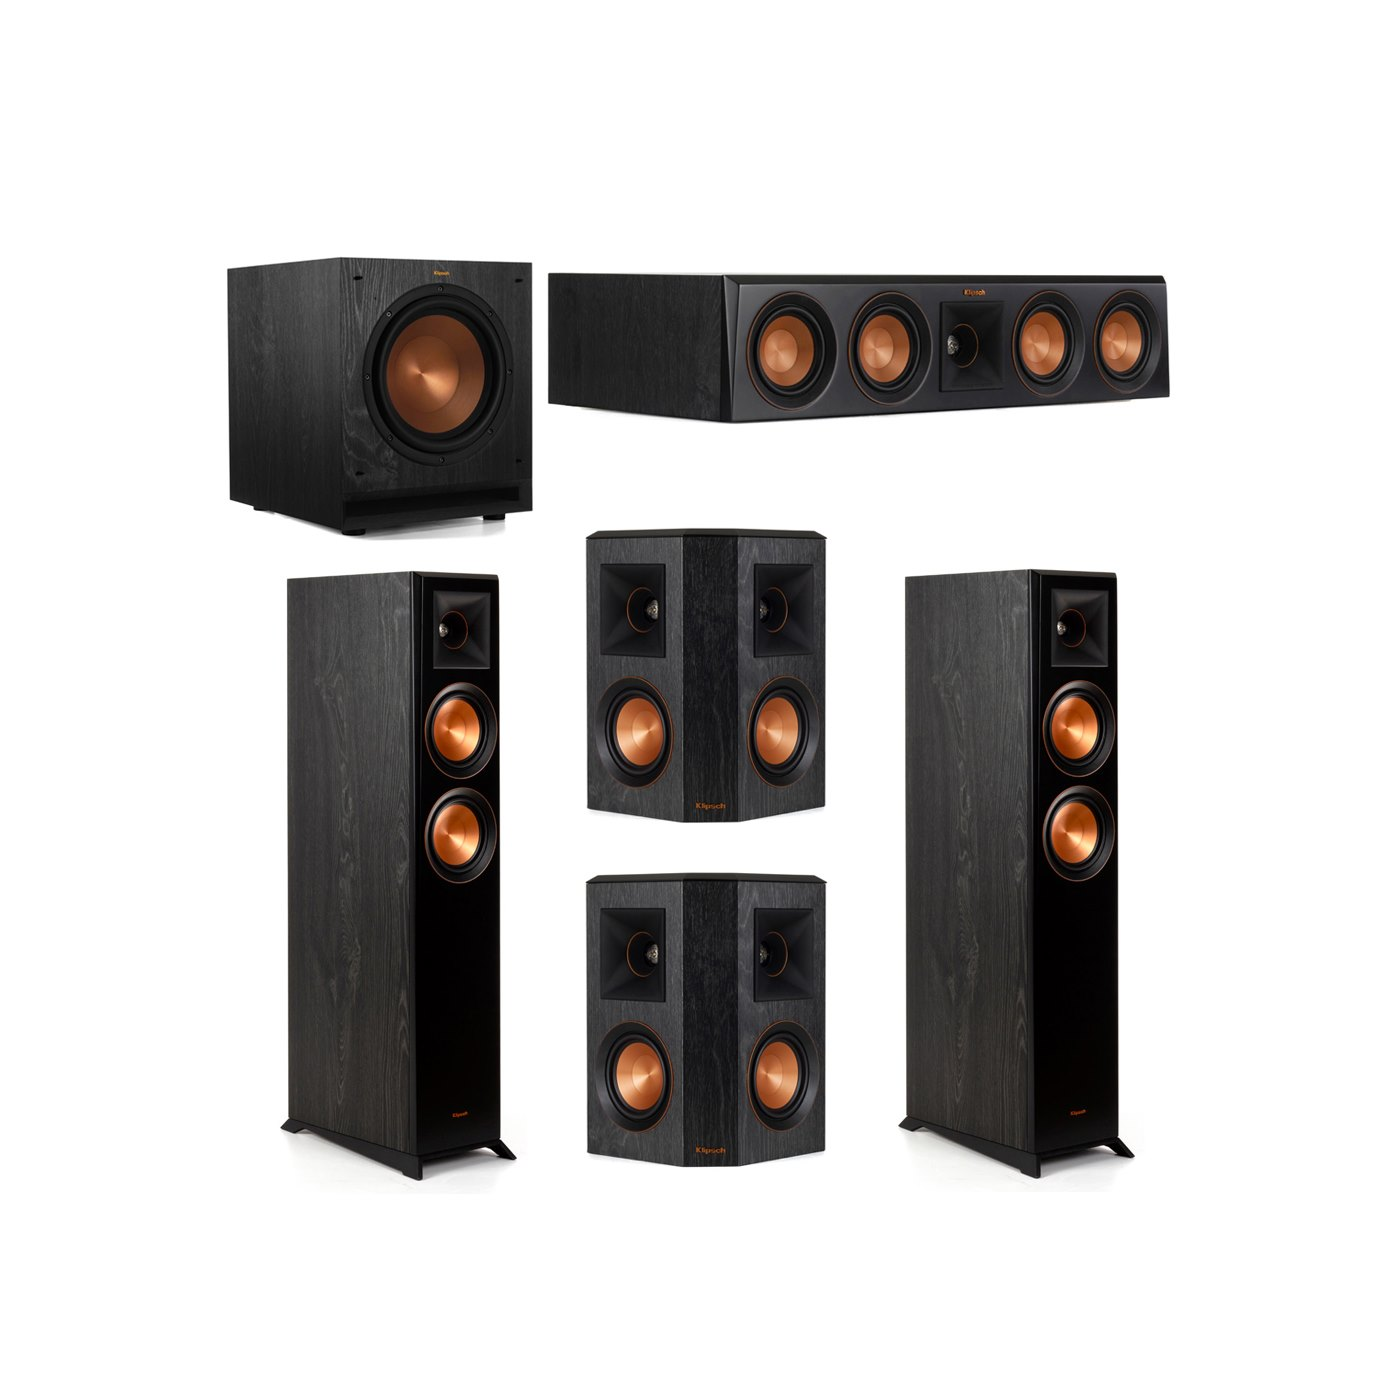 Klipsch 5.1 System with 2 RP-5000F Floorstanding Speakers, 1 Klipsch RP-404C Center Speaker, 2 Klipsch RP-402S Surround Speakers, 1 Klipsch SPL-100 Subwoofer